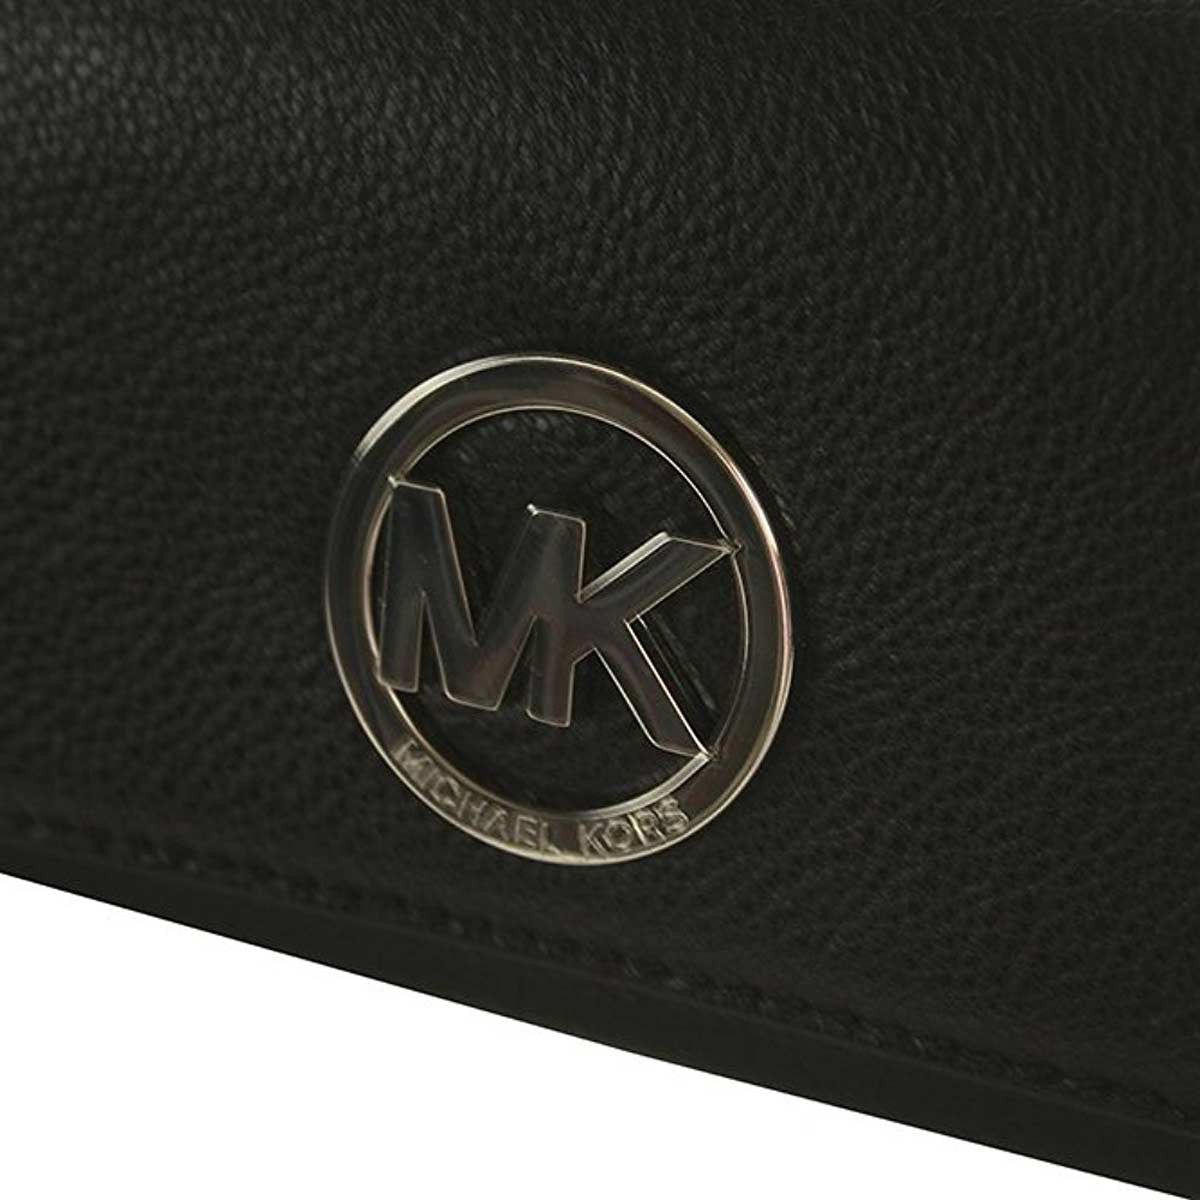 Michael Kors 32F2SFTE3L-001 Women's Fulton Flap Black Leather Continental Carryall Wallet